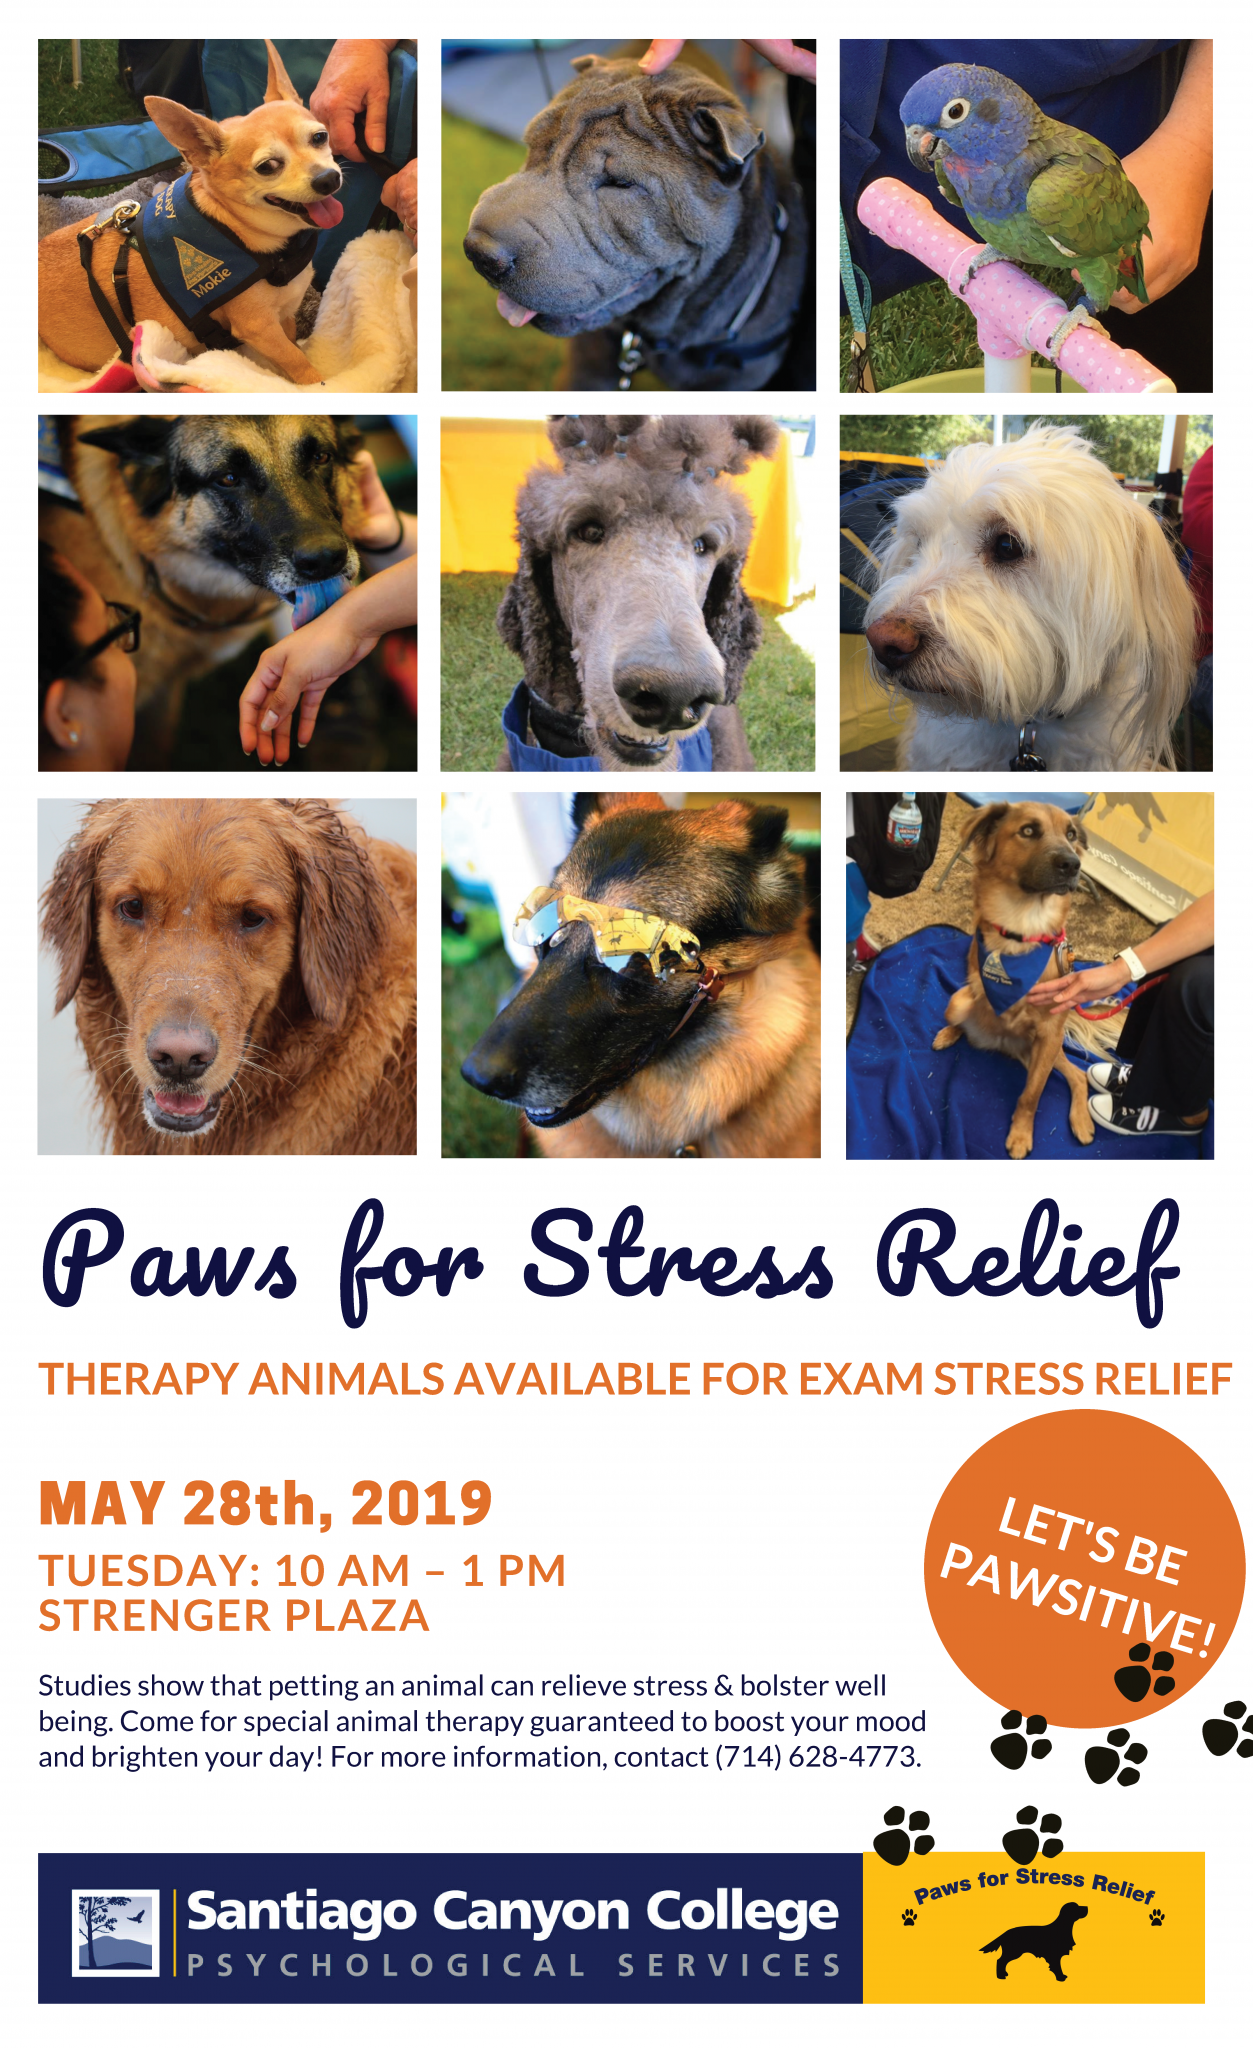 Paws for Stress Relief Poster Event Details